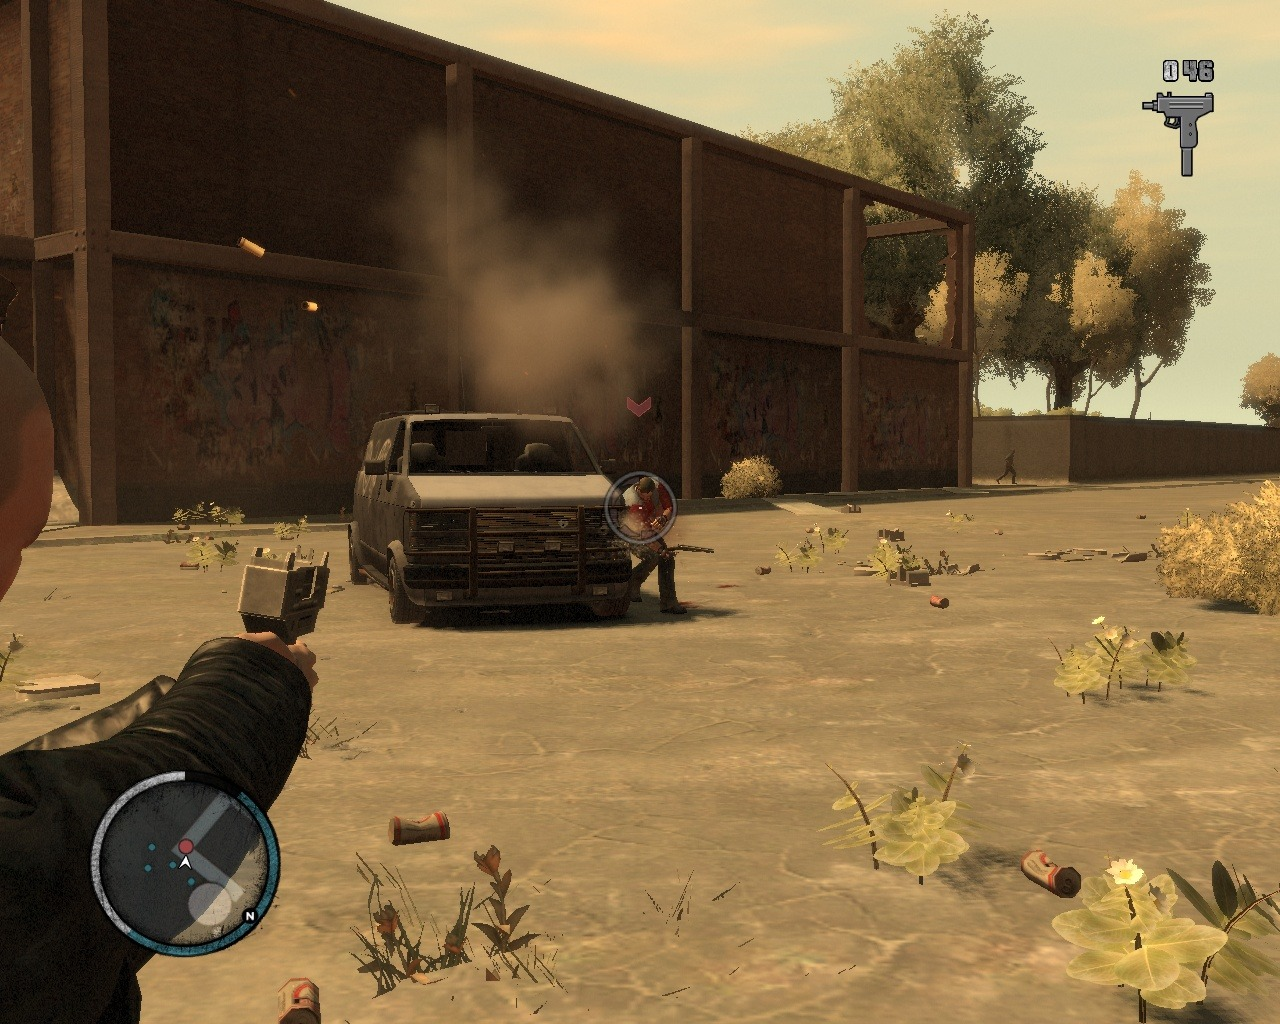 Gta episodes from liberty city mods cars : Hogans heroes